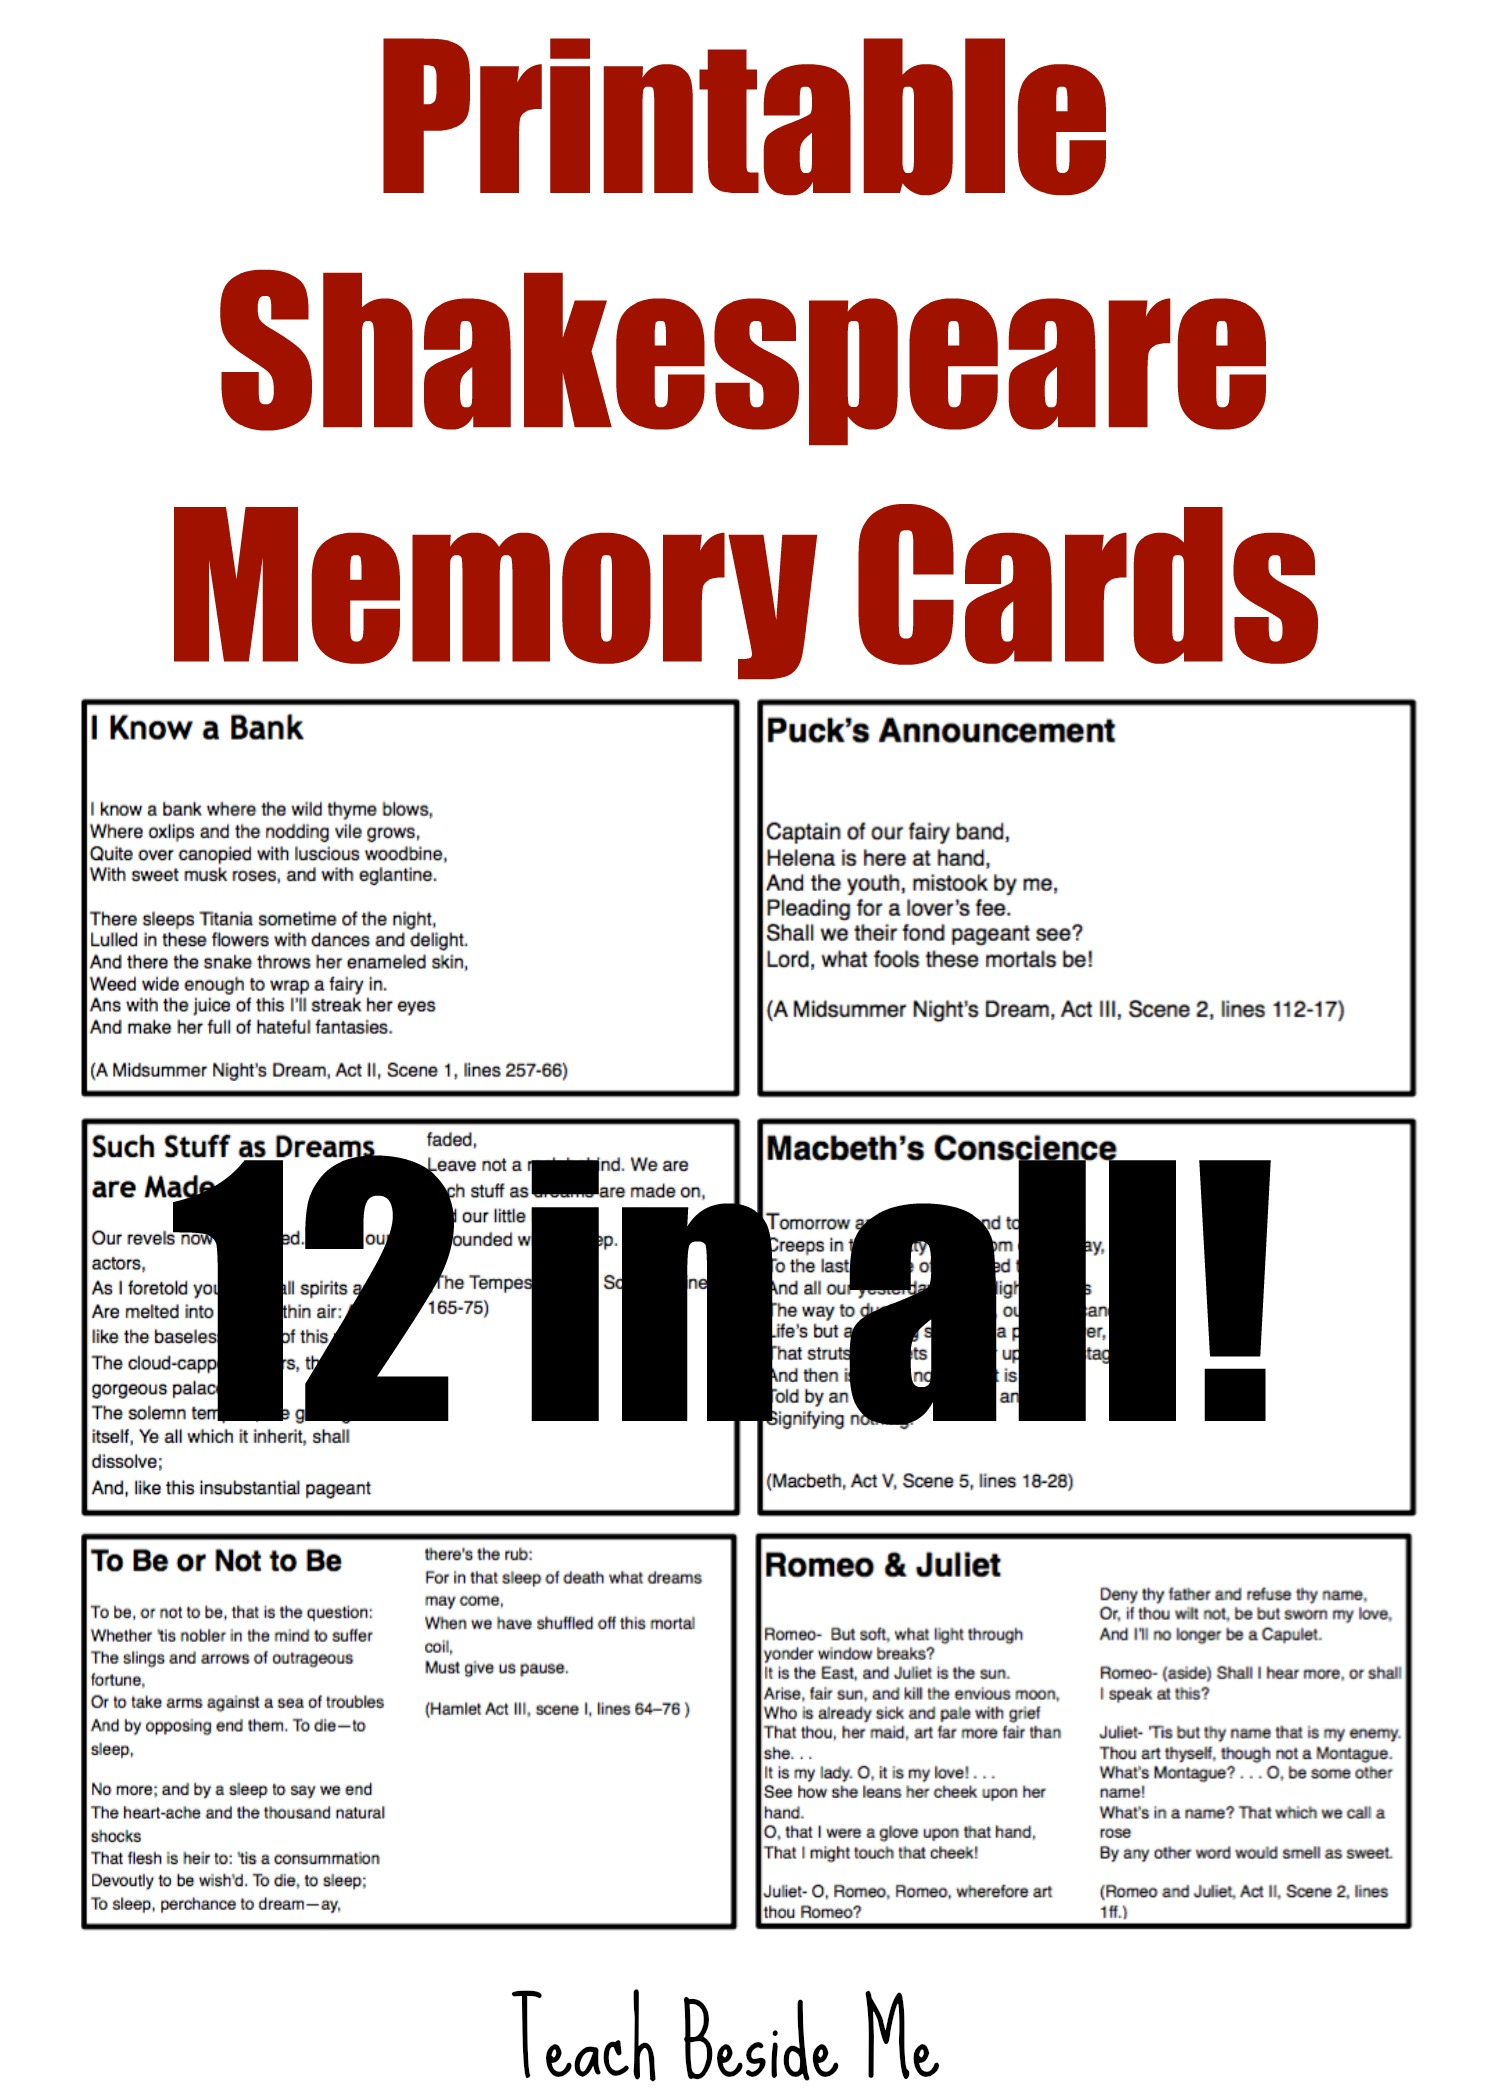 $ Shakespeare Memory Cards